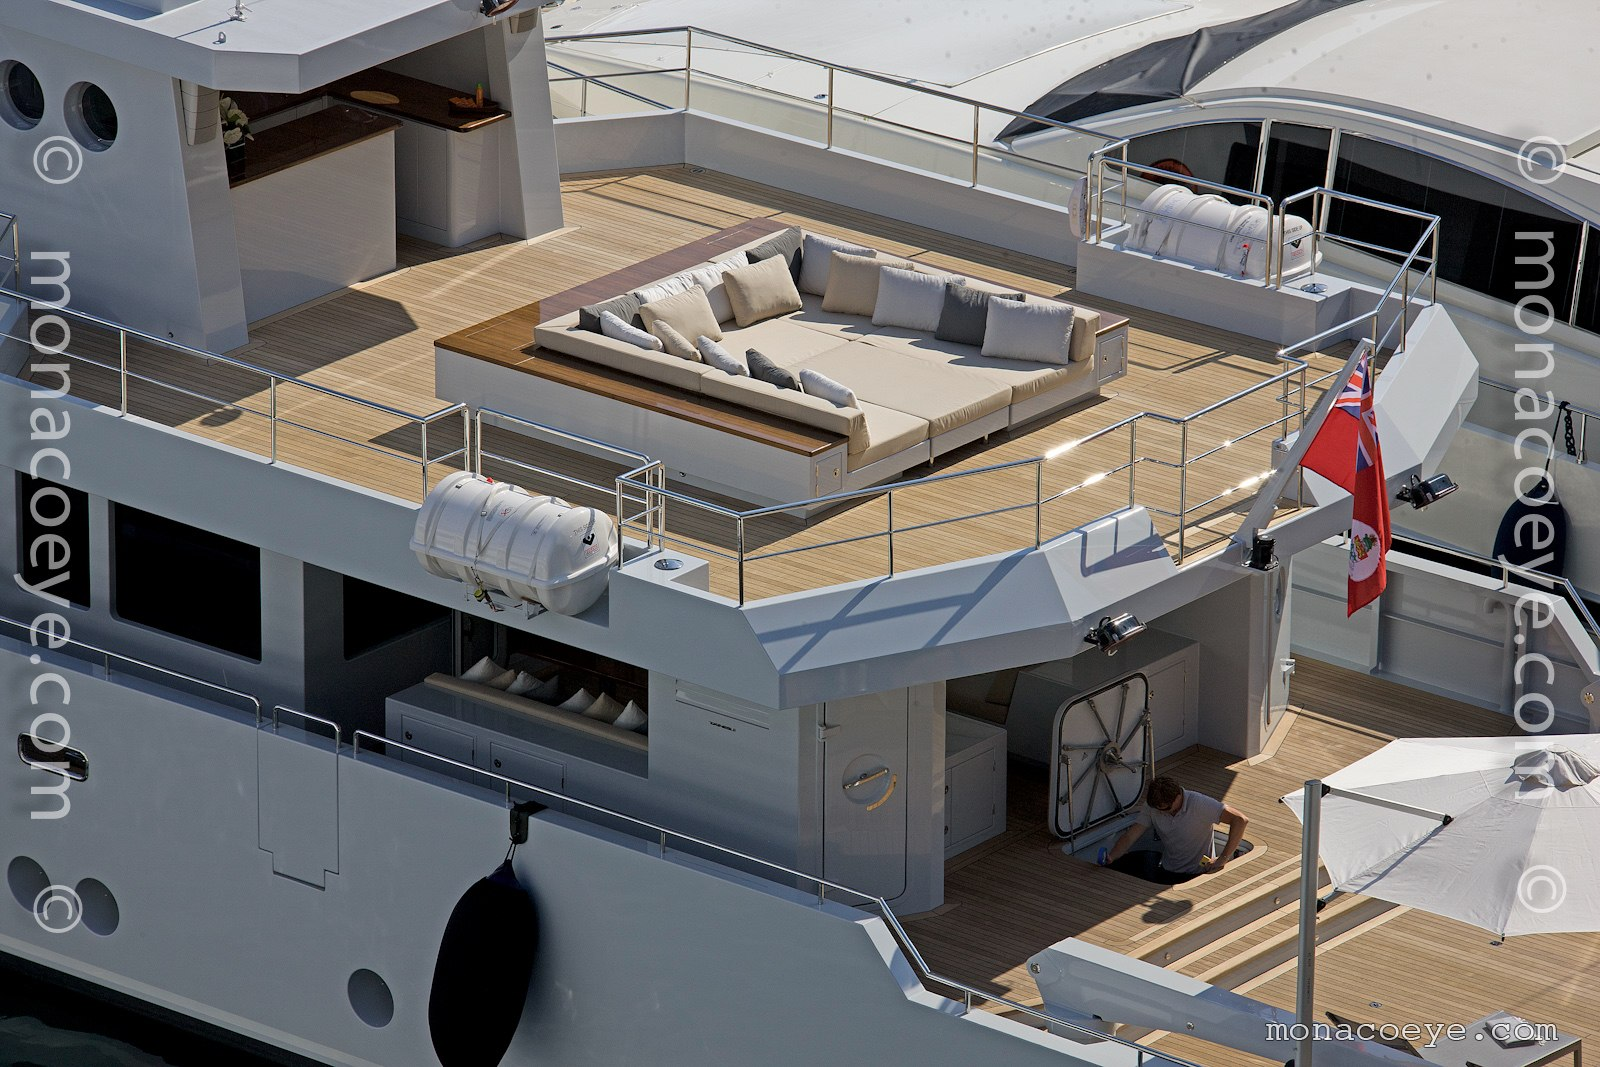 Nomade, 2011 design from Tansu Yachts. At the Superyachts Rendezvous.